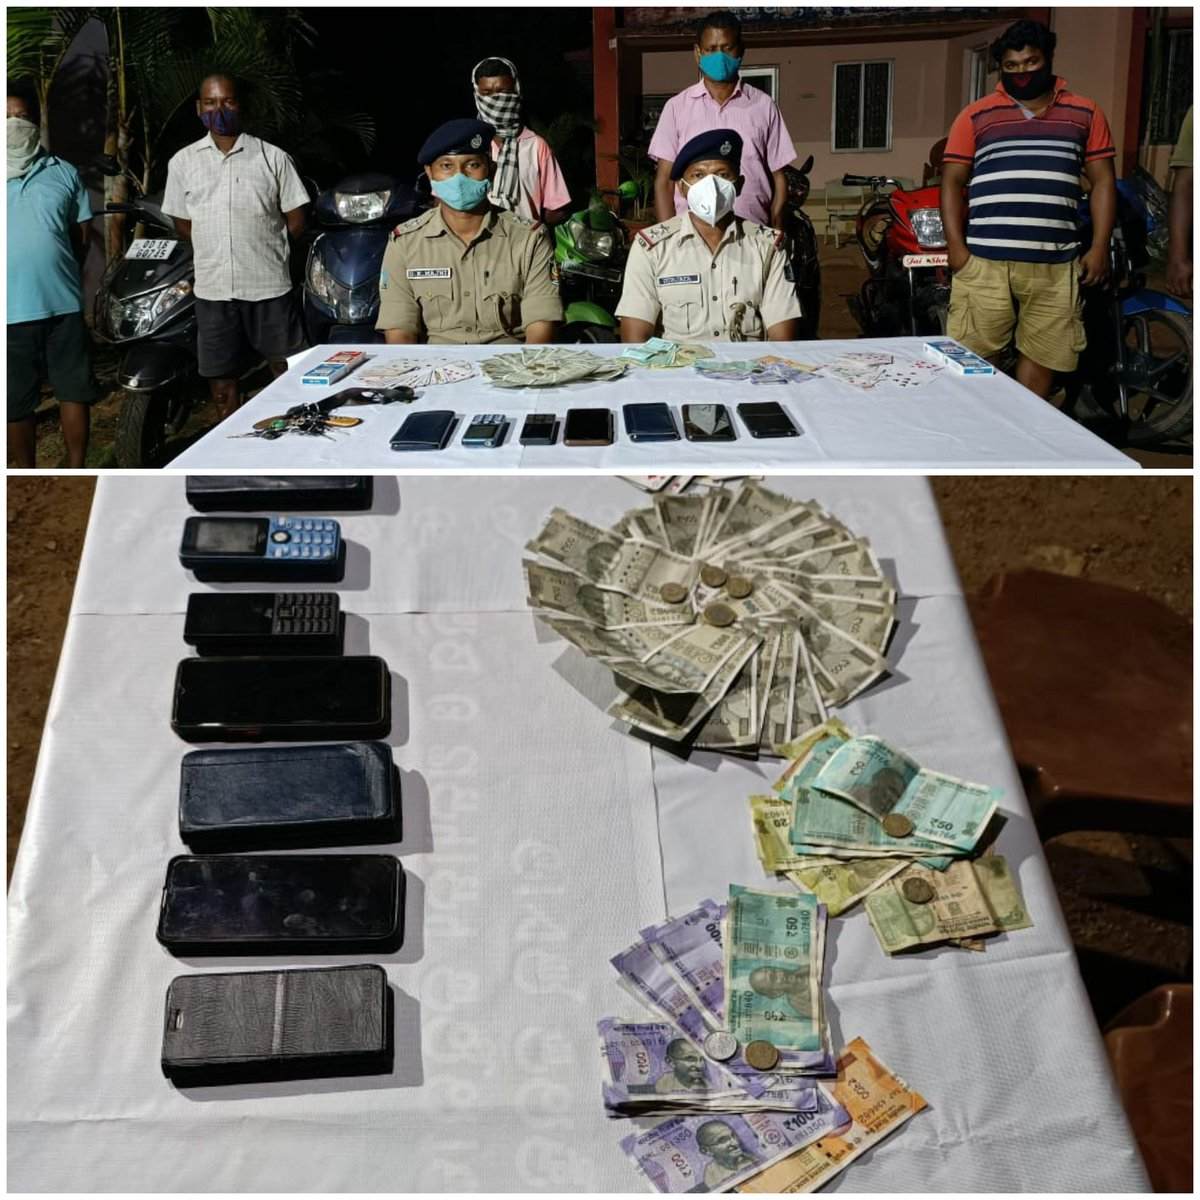 Kutra Police detected a gambling case and seized cash of Rs.21000/-, 6 mobile phones, 6 bikes & other playing articles. 6 person have been https://t.co/iSJdM0aWXv case No 62/21 U/s 269/270 IPC/3 OPG act was registered. @DGPOdisha @odisha_police @digwrrkl @sagarika_nath https://t.co/33II5PSWAk